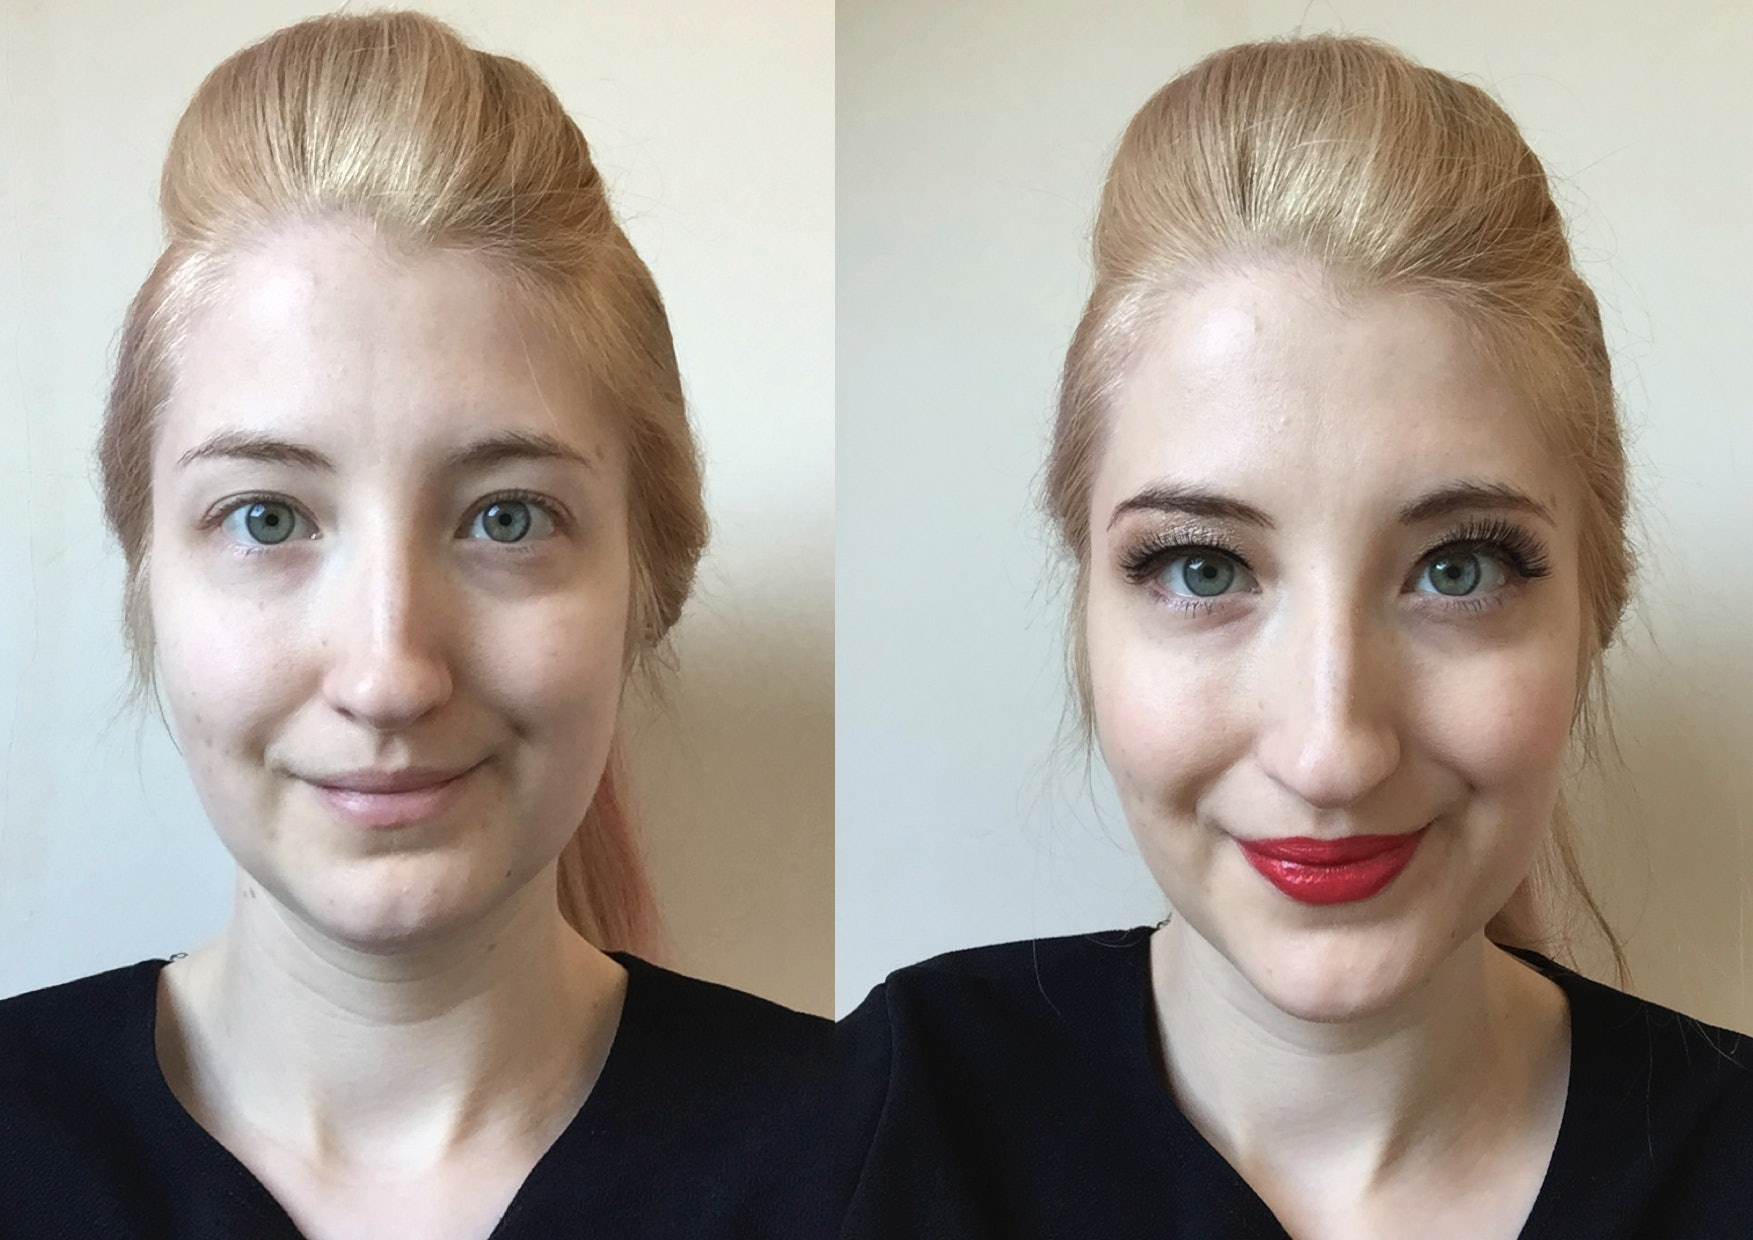 How to get 1950s hollywood makeup in 10 easy steps so you can be a how to get 1950s hollywood makeup in 10 easy steps so you can be a starlet too baditri Image collections